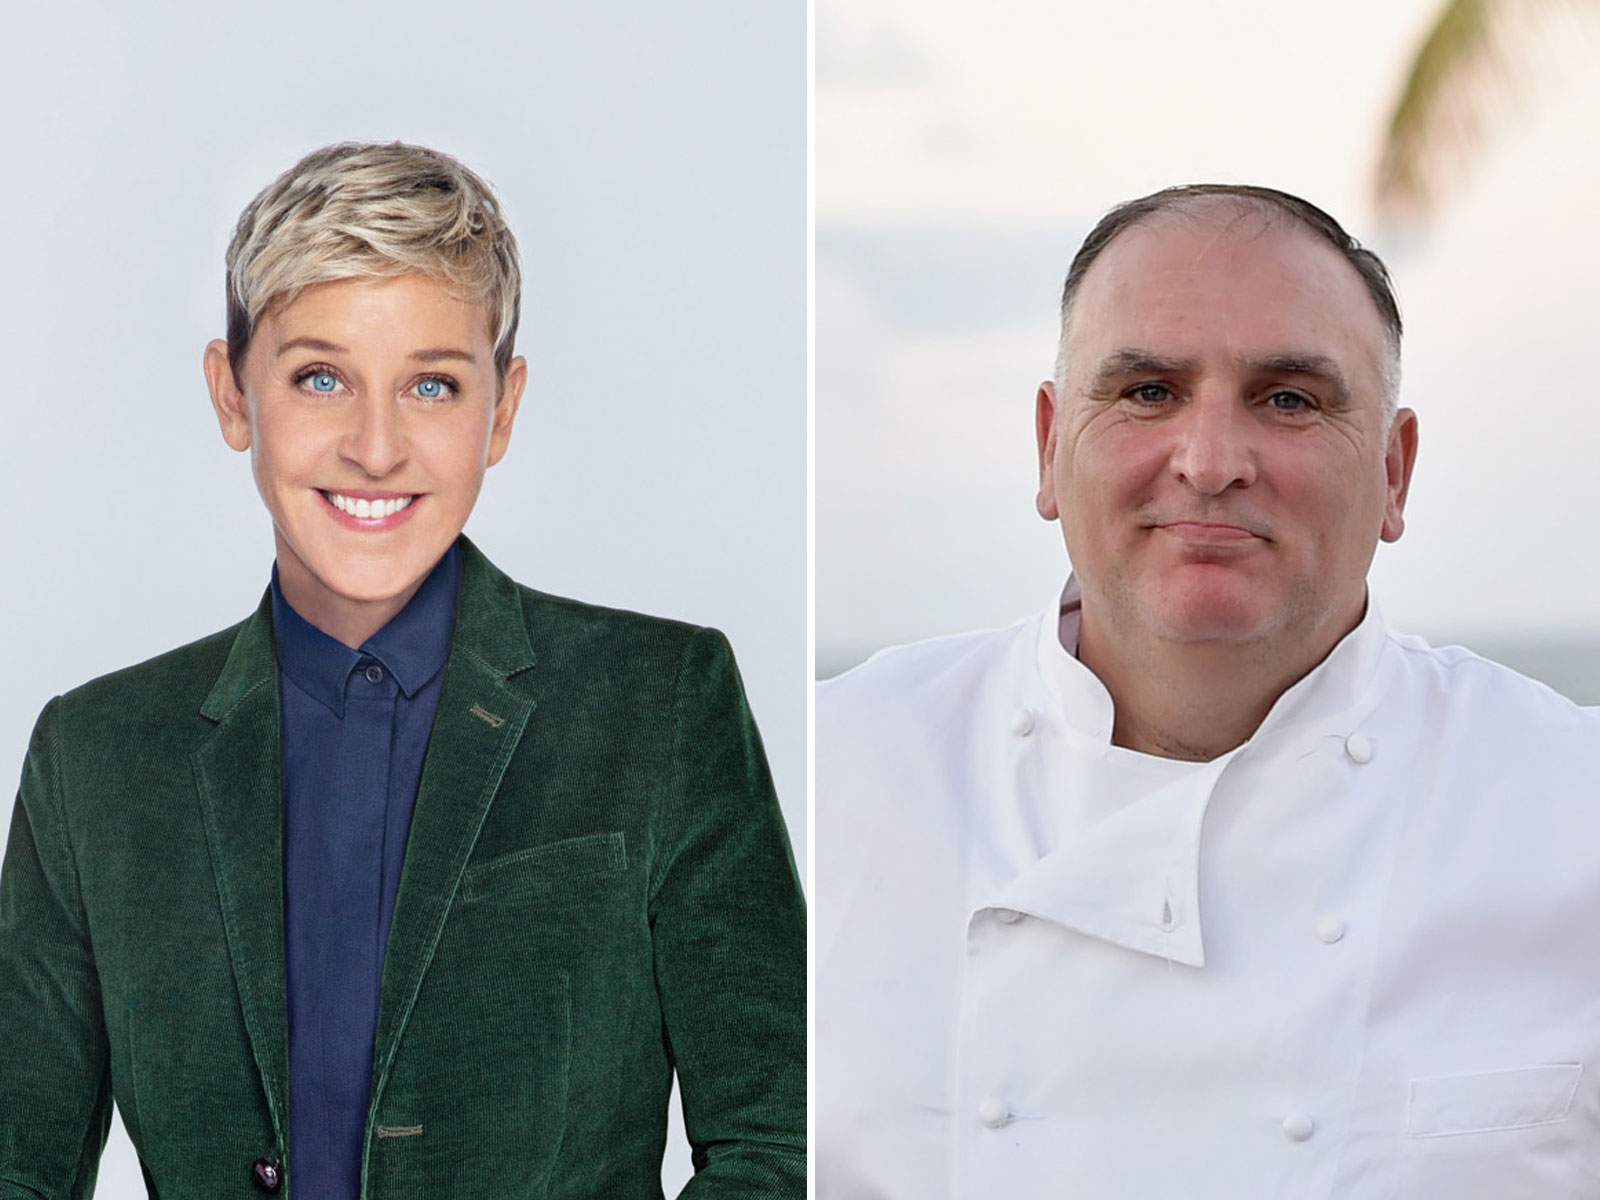 Watch José Andrés and Ellen DeGeneres Make Vegan Pisco Sours and Squash Blossom 'Cheeseadillas'